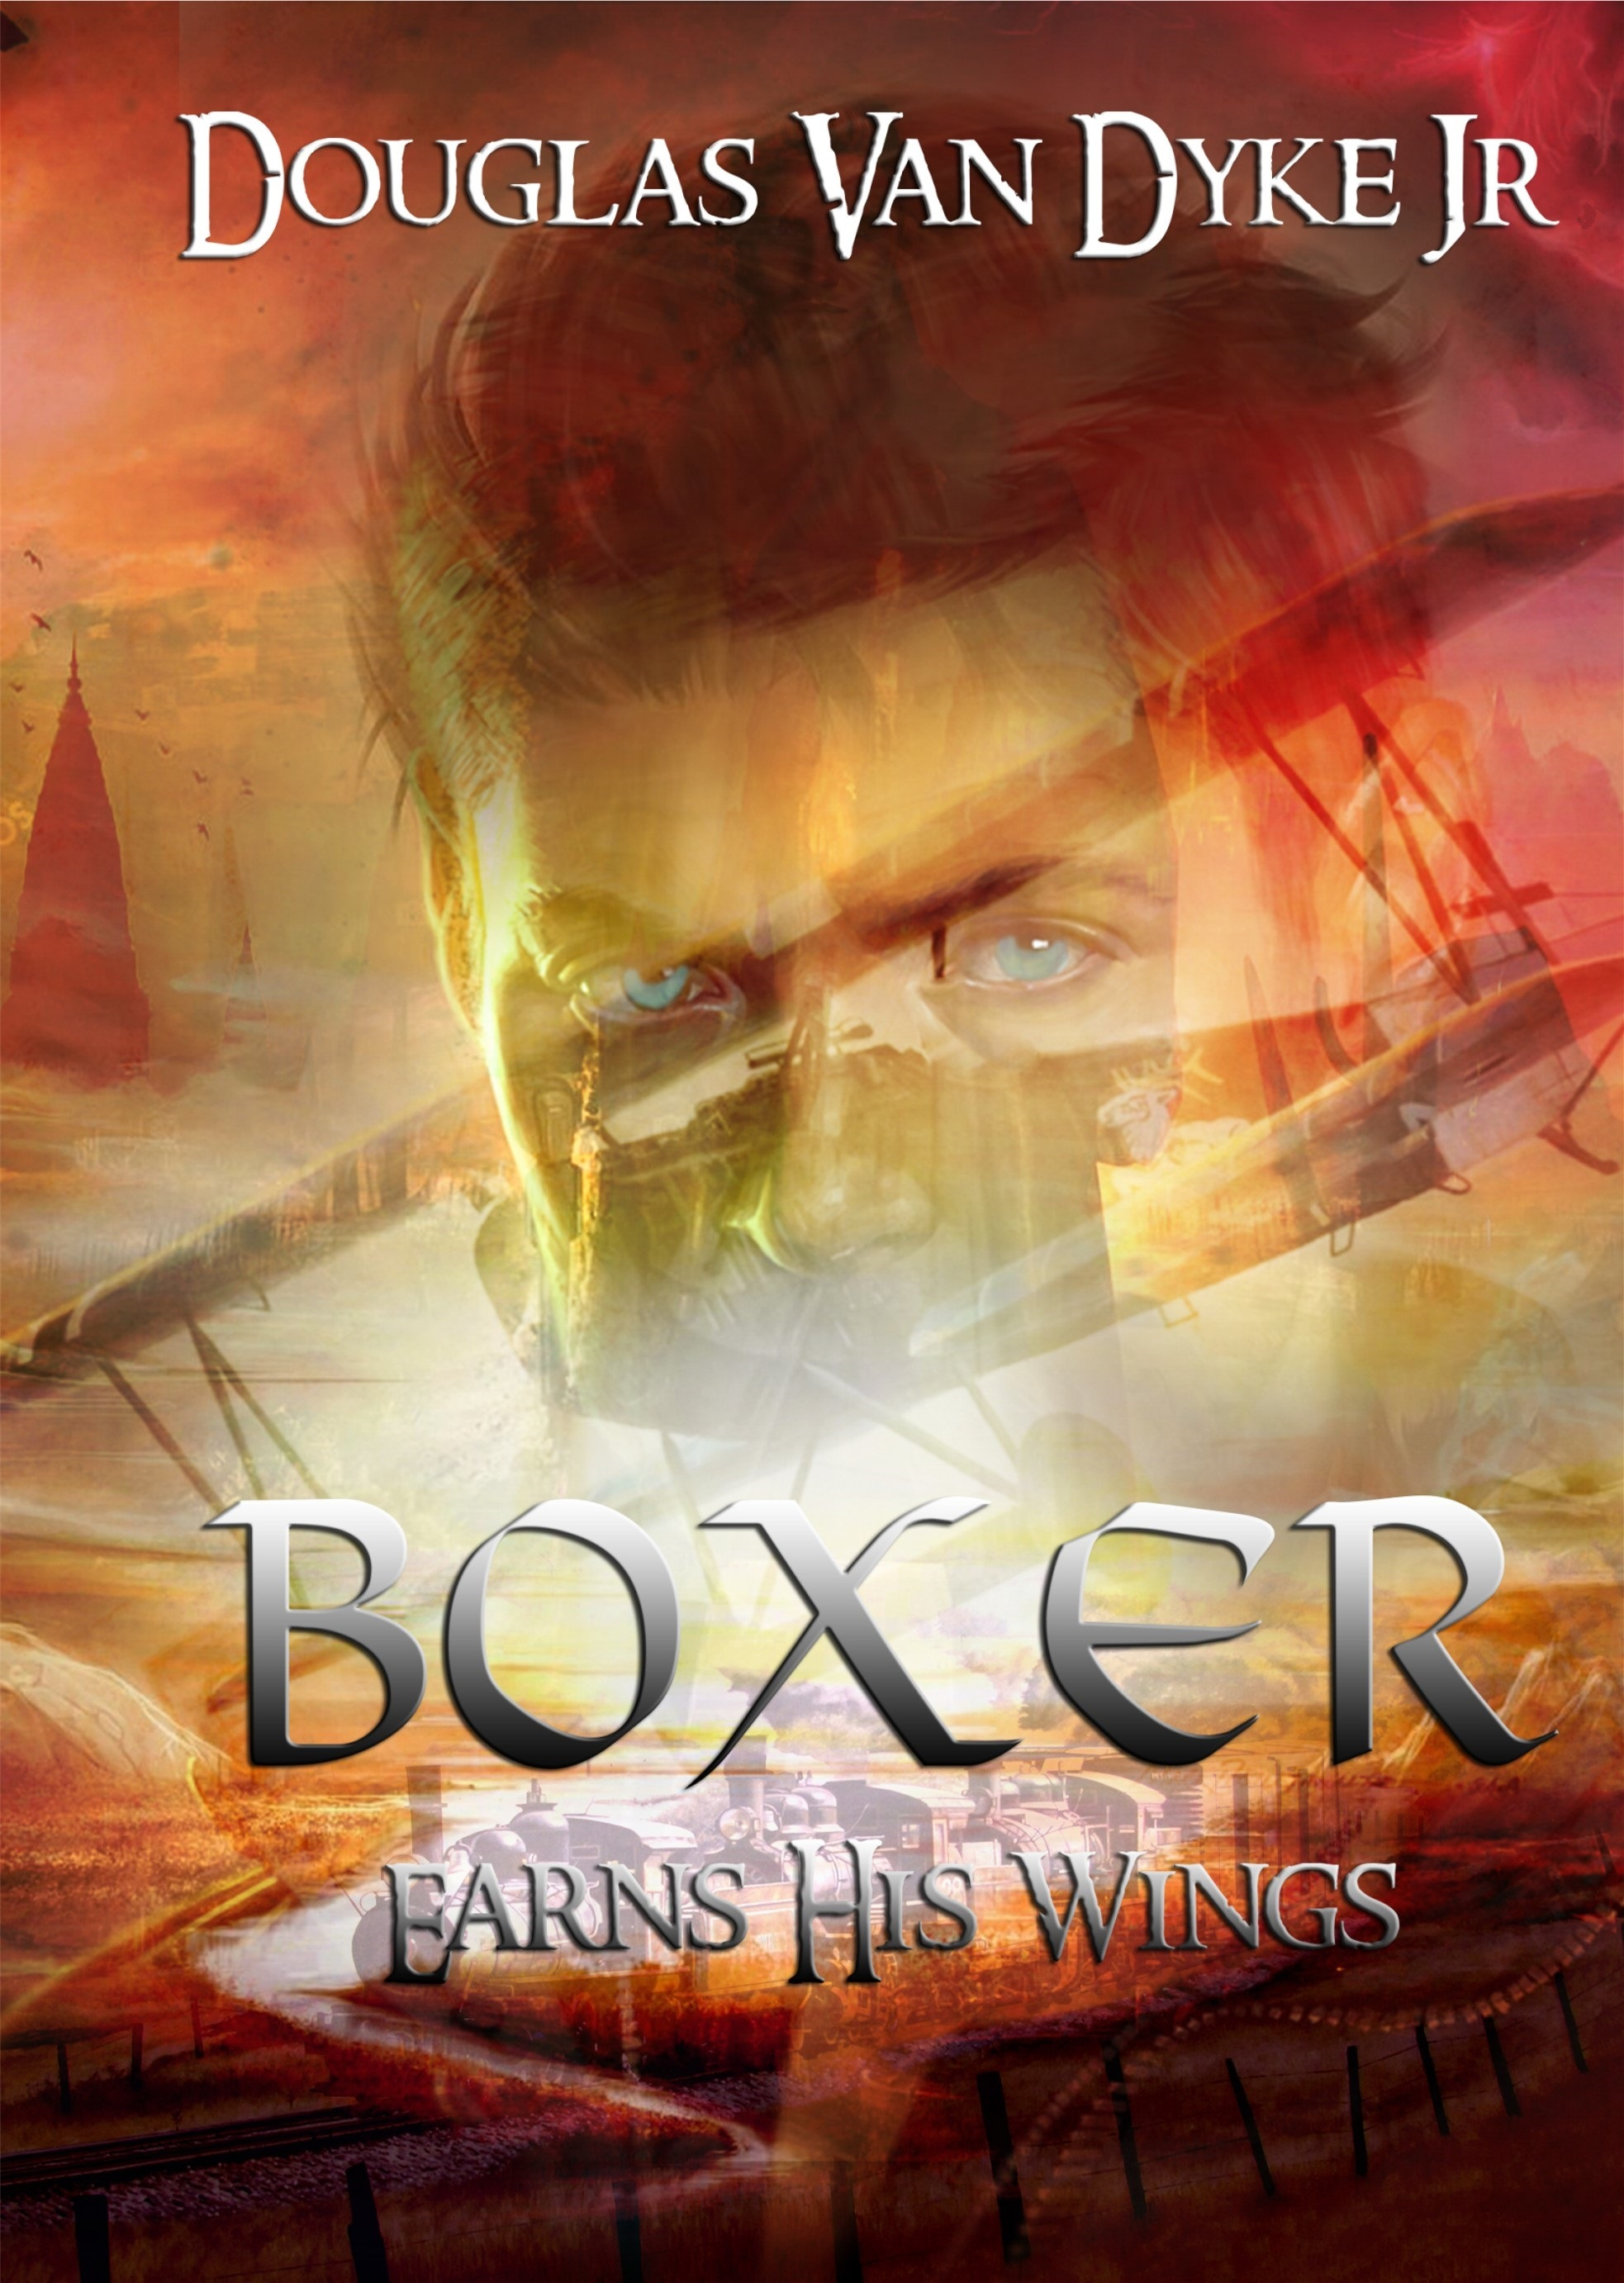 Audiobook Available: Boxer Earns His Wings